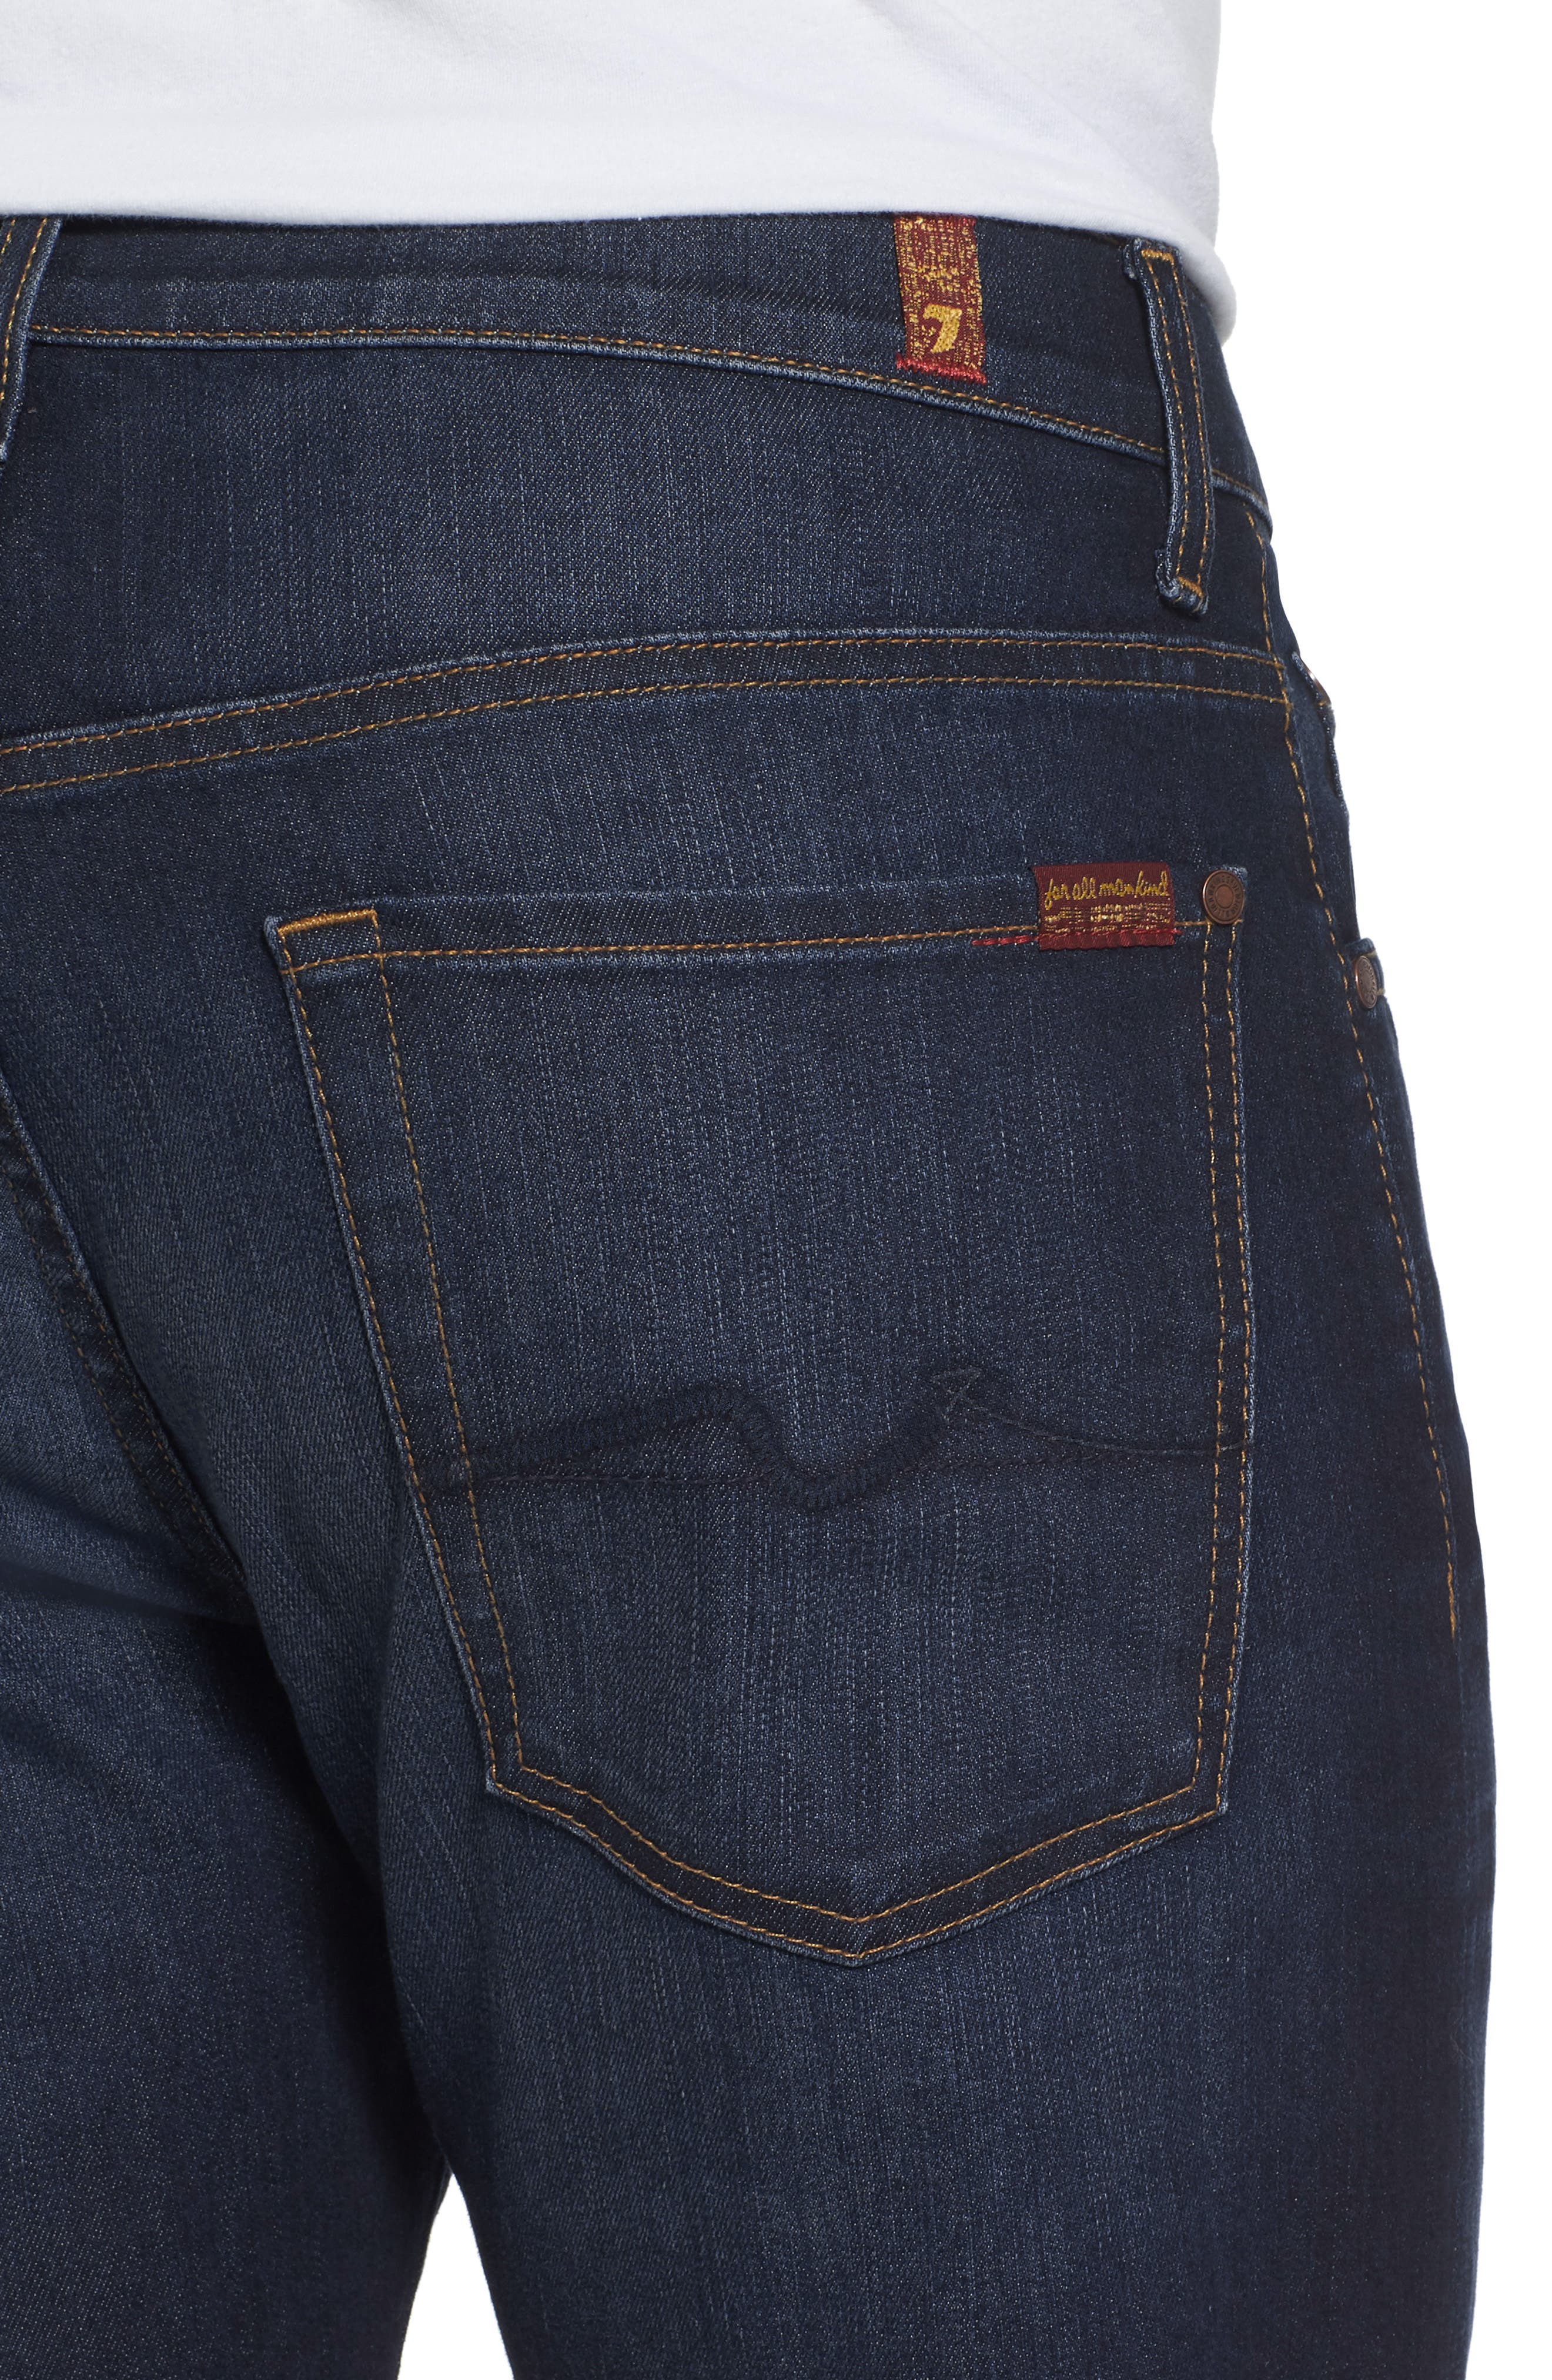 Airweft Austyn Relaxed Straight Leg Jeans,                             Alternate thumbnail 4, color,                             400